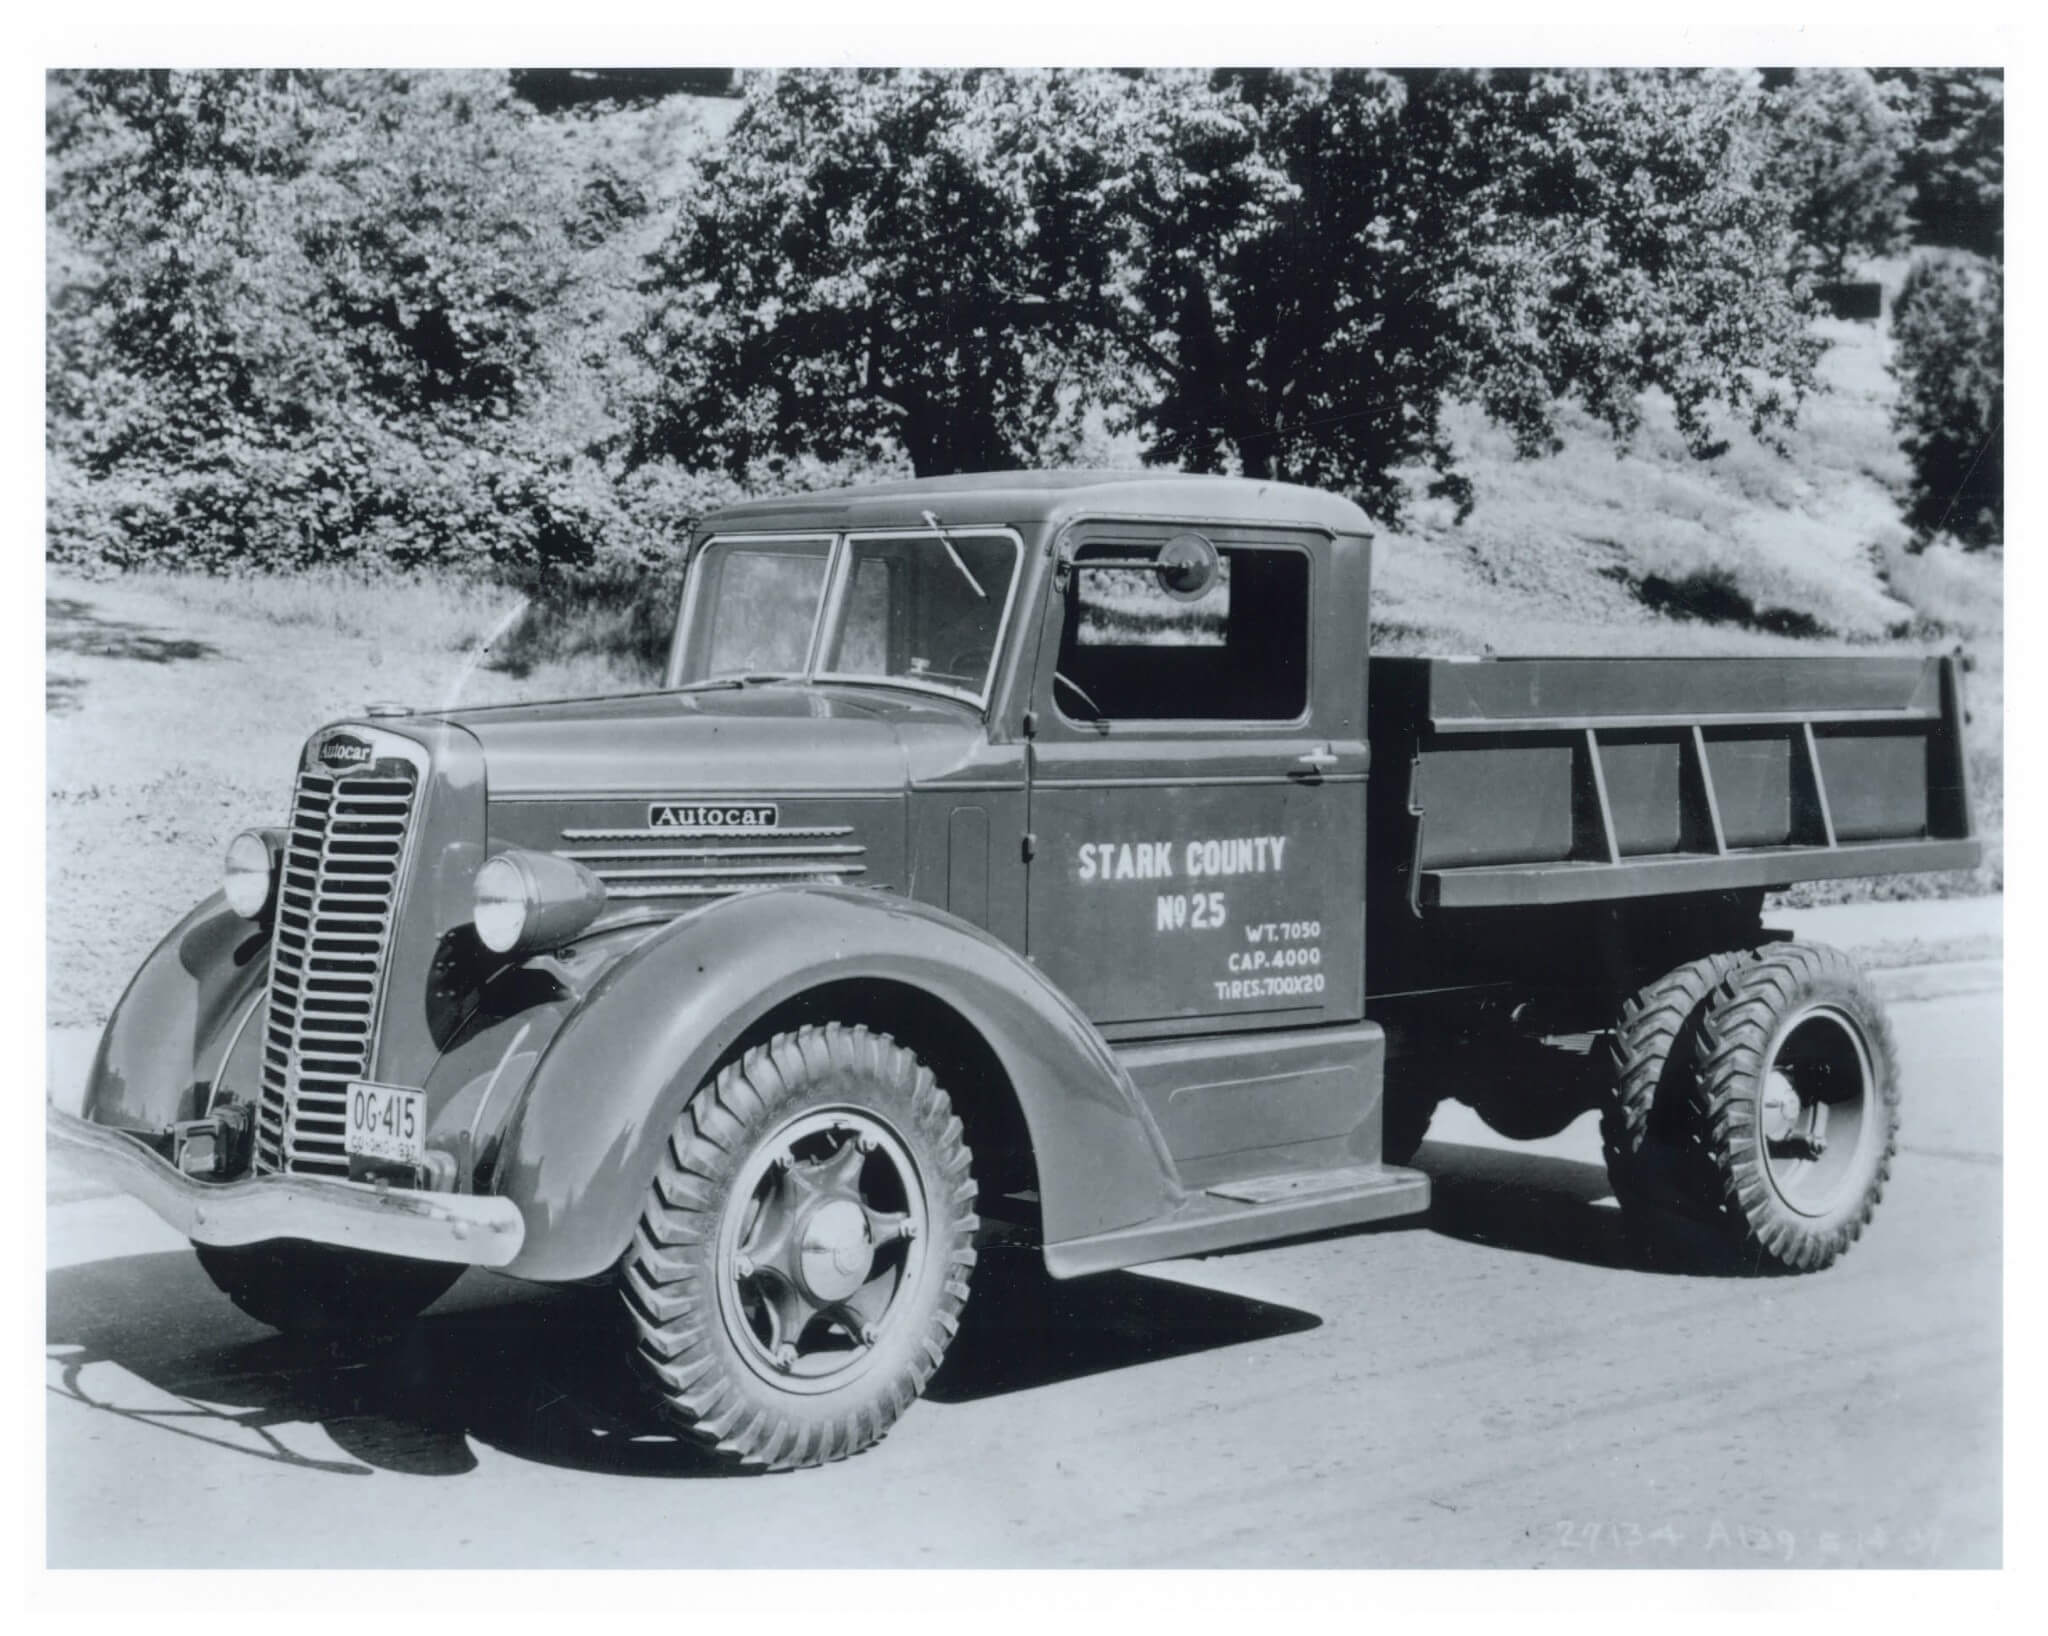 The 1930s found truck makers following the styling lead of their automotive cousins. Note the unique front end styling cab treatment on this county-operated Autocar medium-duty dumptruck.